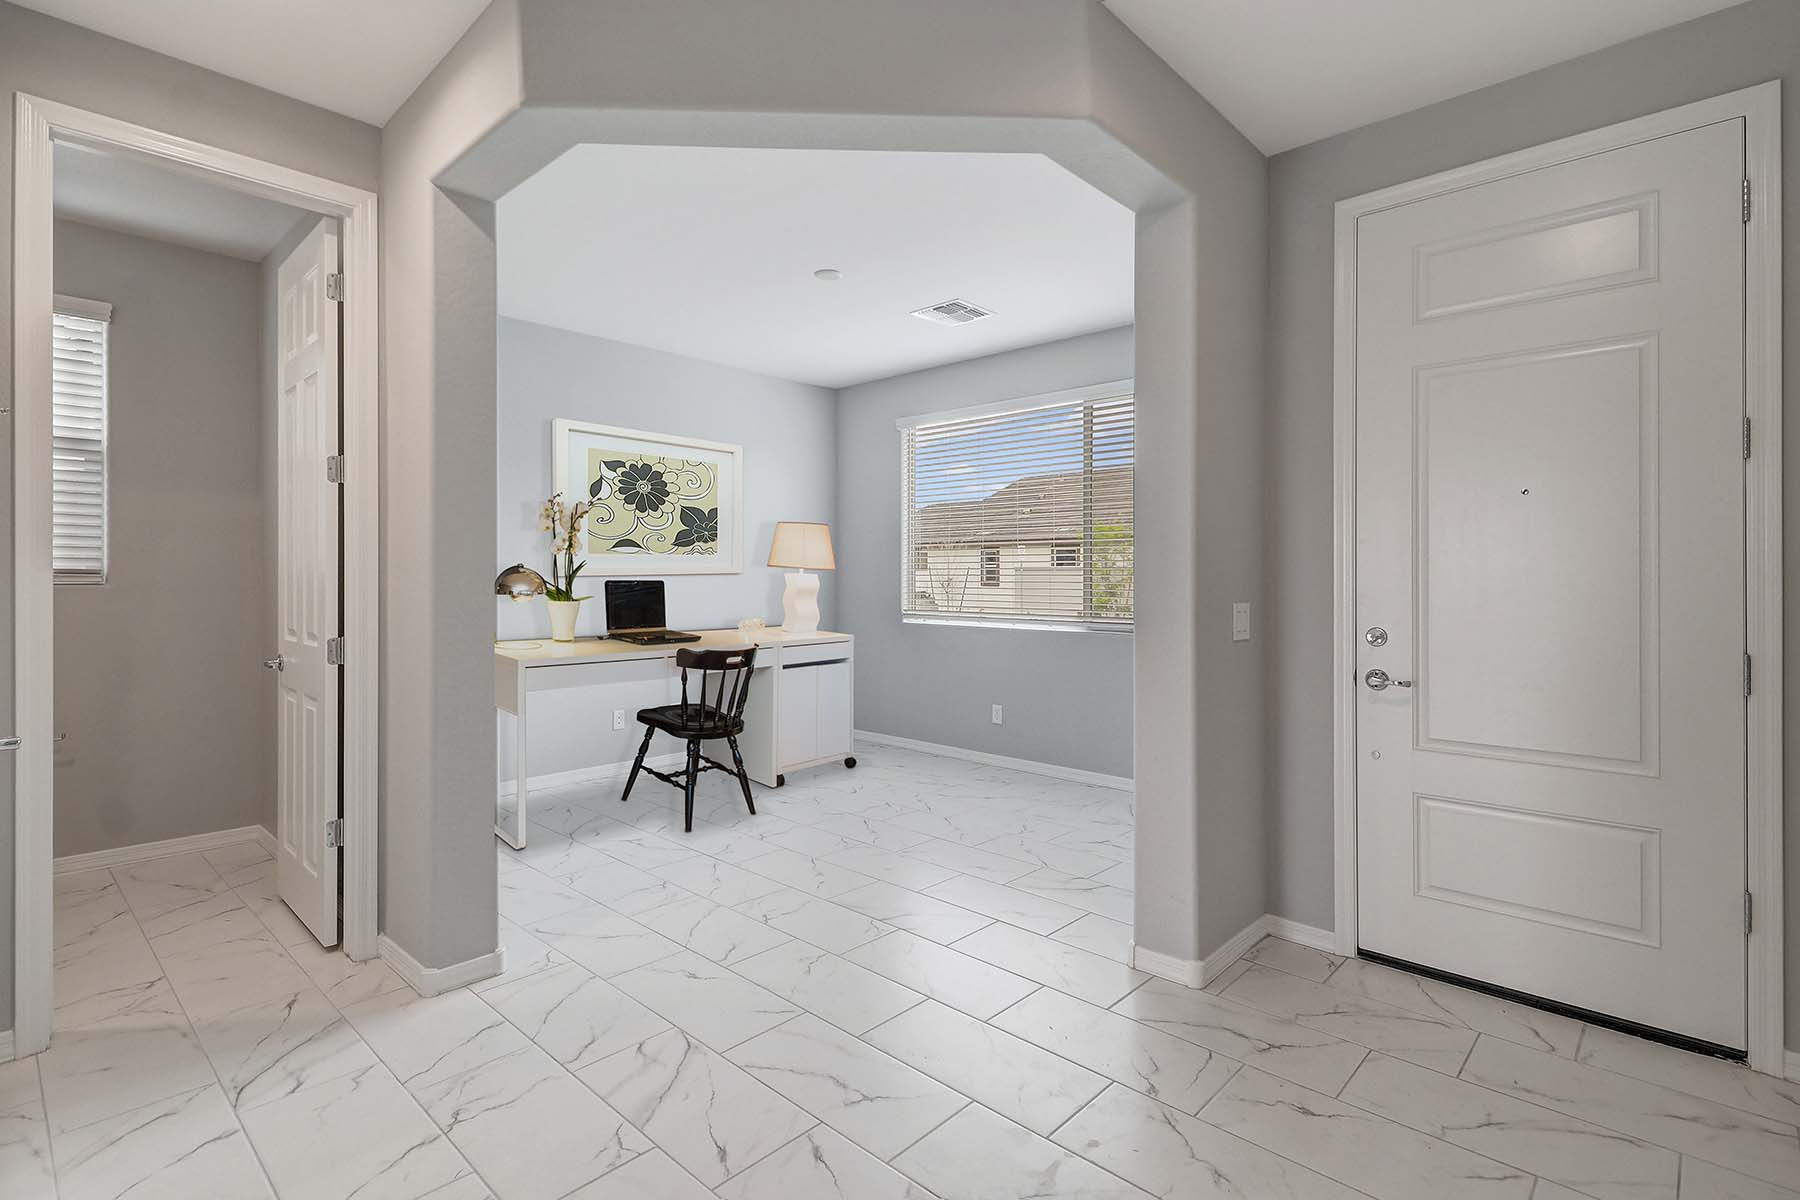 Sinclair Plan  at Roosevelt Park in Avondale Arizona by Mattamy Homes